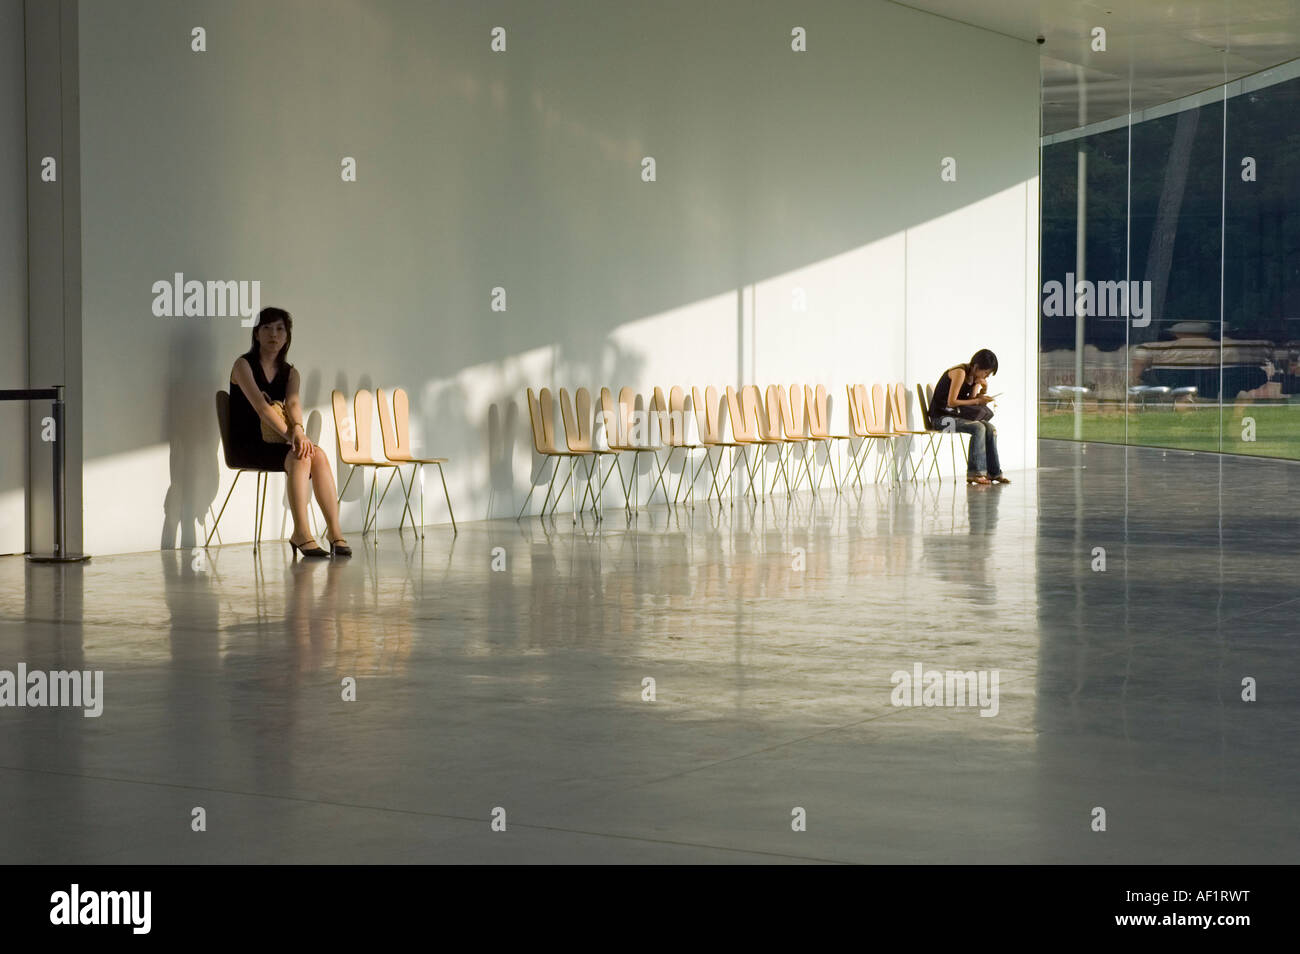 Two women waiting in the foyer of the 21st Century Museum of Contemporary Art, Kanazawa, Japan - Stock Image